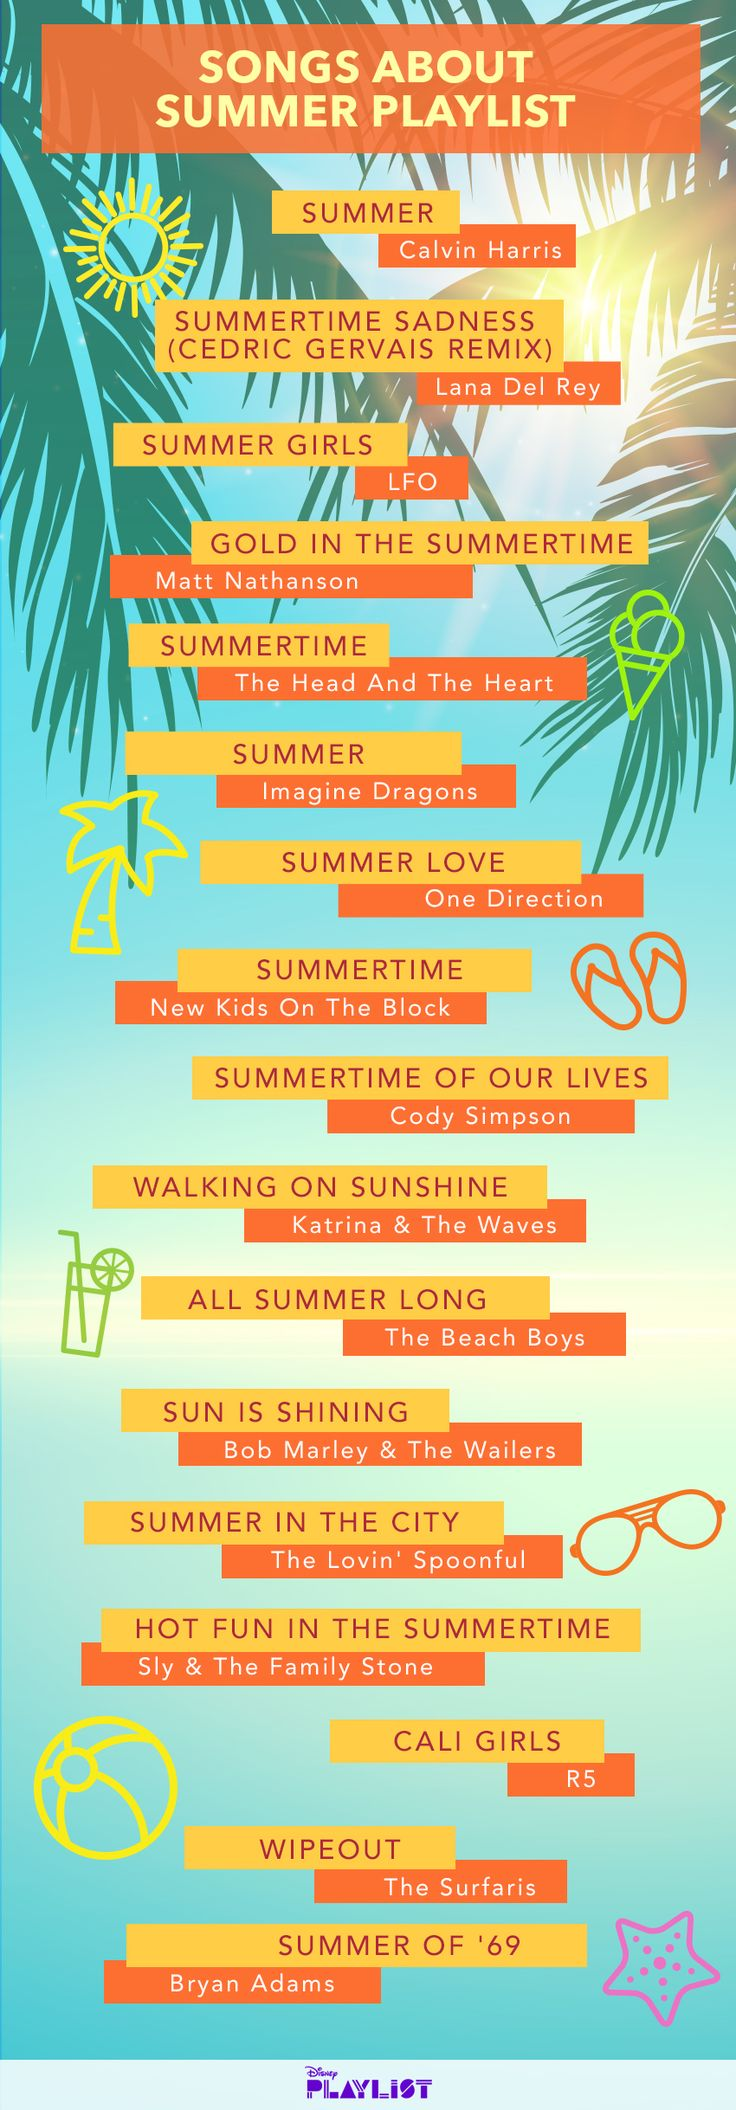 The coloring book tour setlist - Relive Beach Days Gone By With Our Songs About Summer Playlist